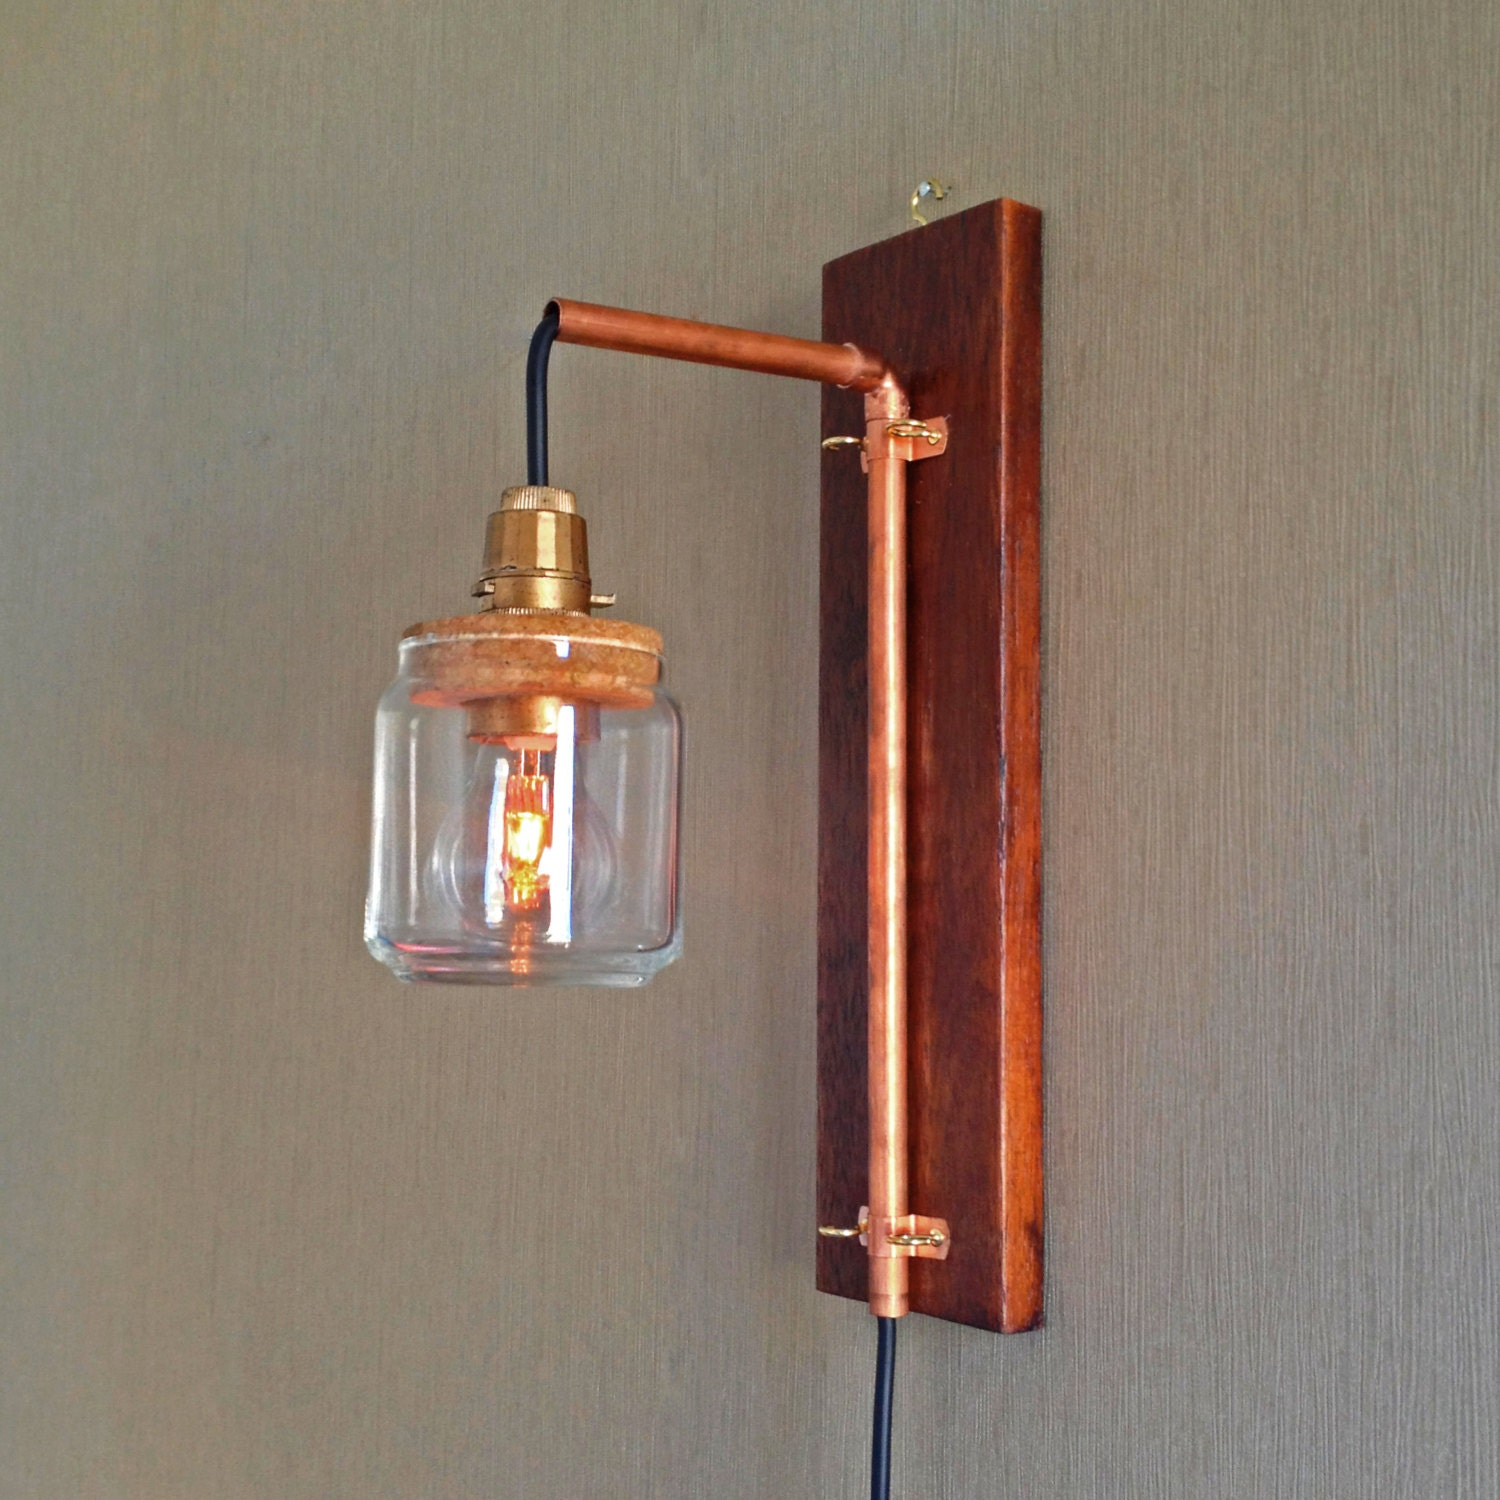 Copper Pipe Wall Lights : Hanging Recycled Wooden Copper Pipe Wall Lamp Modern by Studio23AU